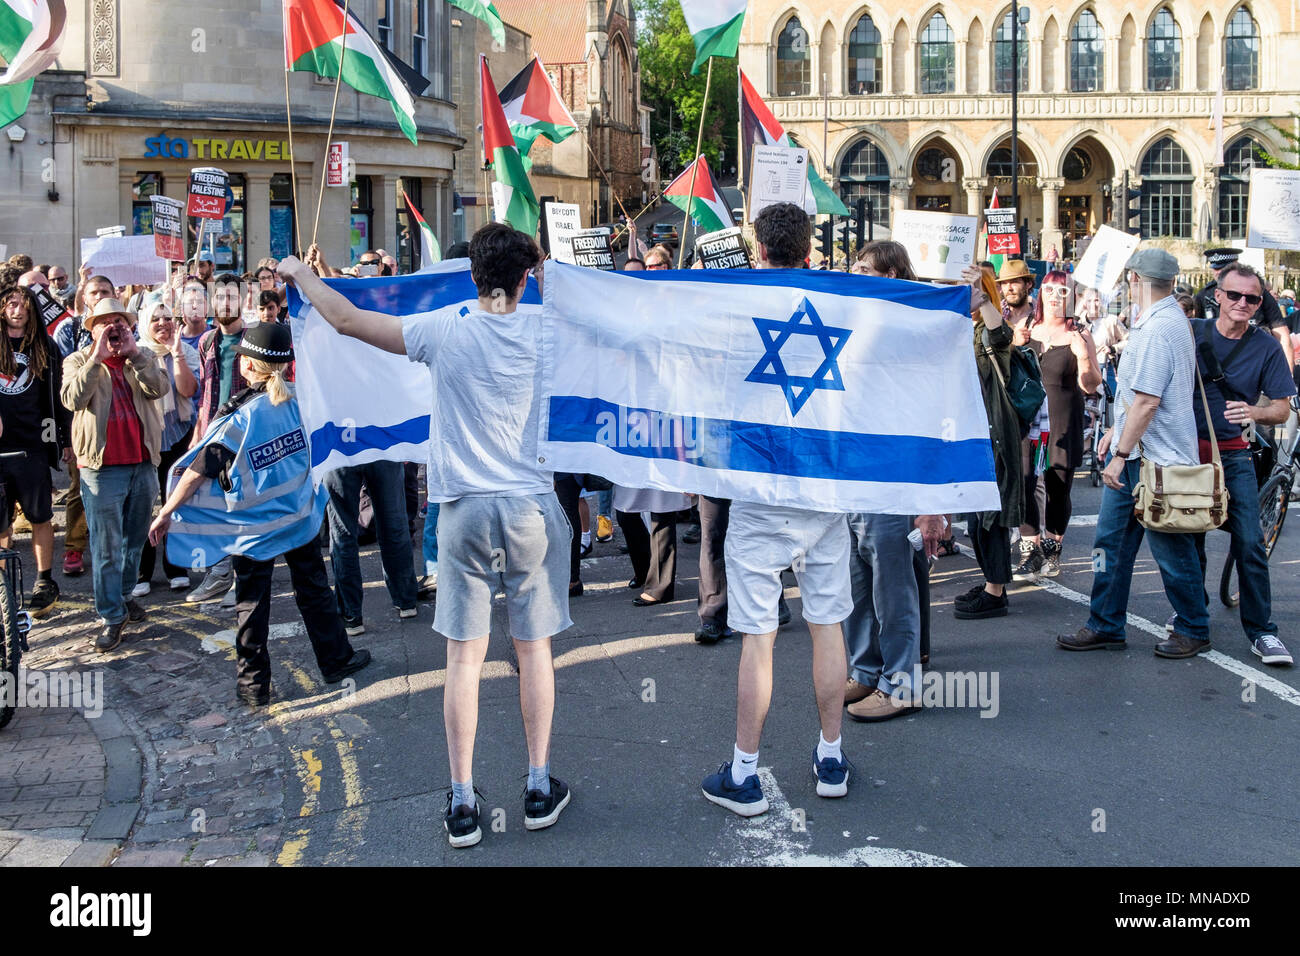 Bristol, UK. 15th May, 2018. A small group of  Pro-Israel supporters carrying the Israeli flag are pictured as they confront Pro-Palestinian demonstrators who were taking part in a protest march through Bristol to show their solidarity with the Palestinian people. The protest march and rally was held to allow people to show their support and solidarity with the Palestinian people after 70 Years of Nakba and to protest about Israel's recent actions in Gaza Credit: lynchpics/Alamy Live News - Stock Image